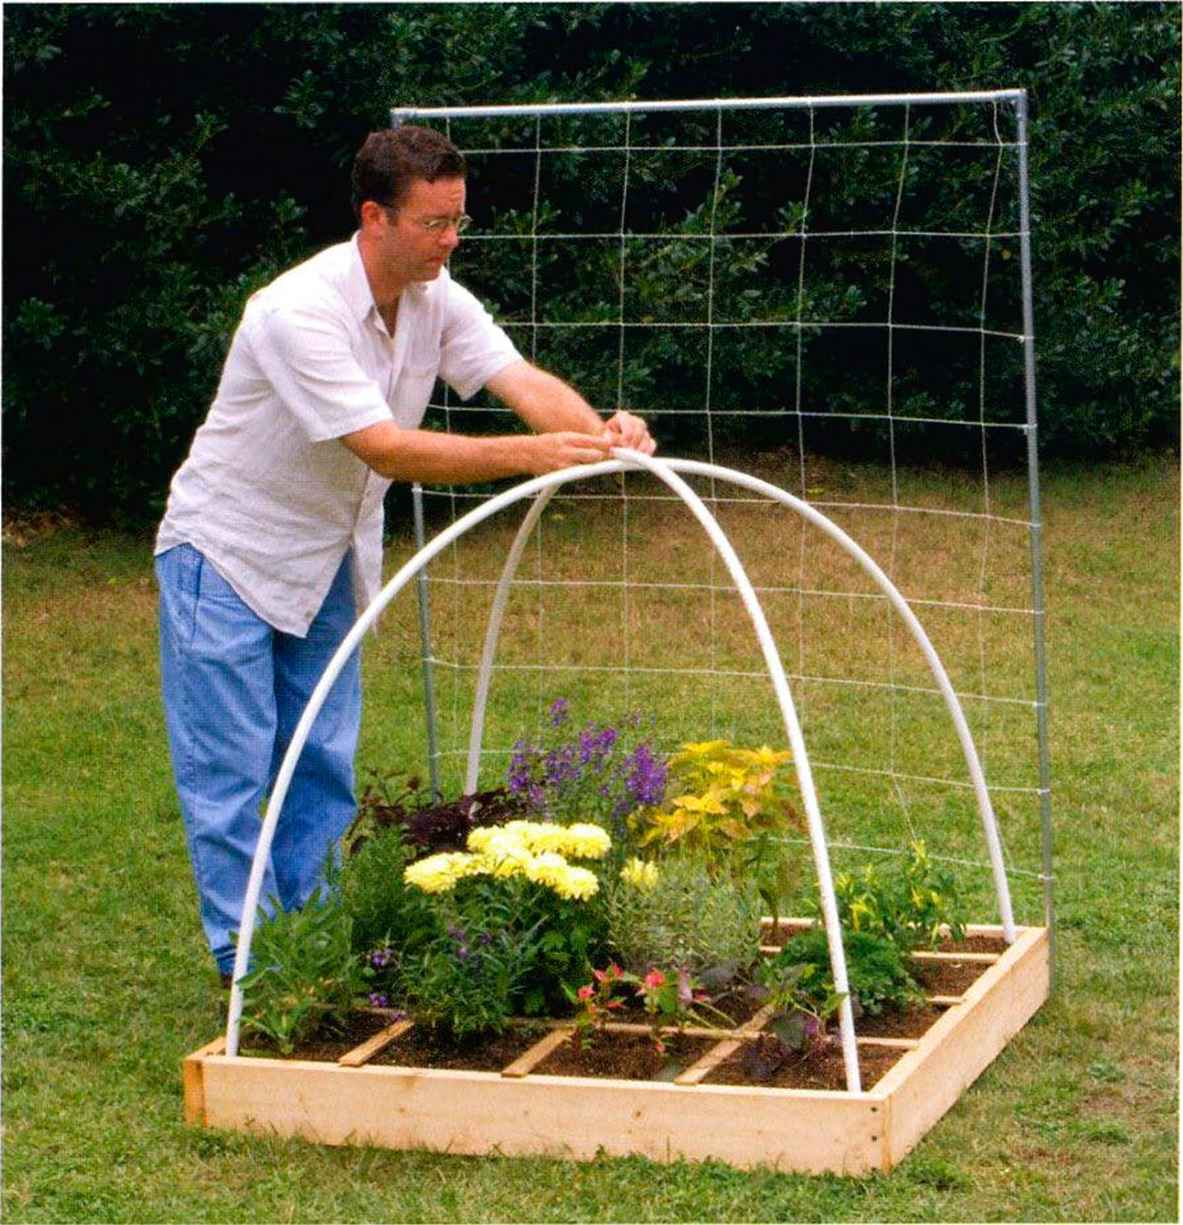 All New Square Foot Gardening Ayq Square Foot Gardening